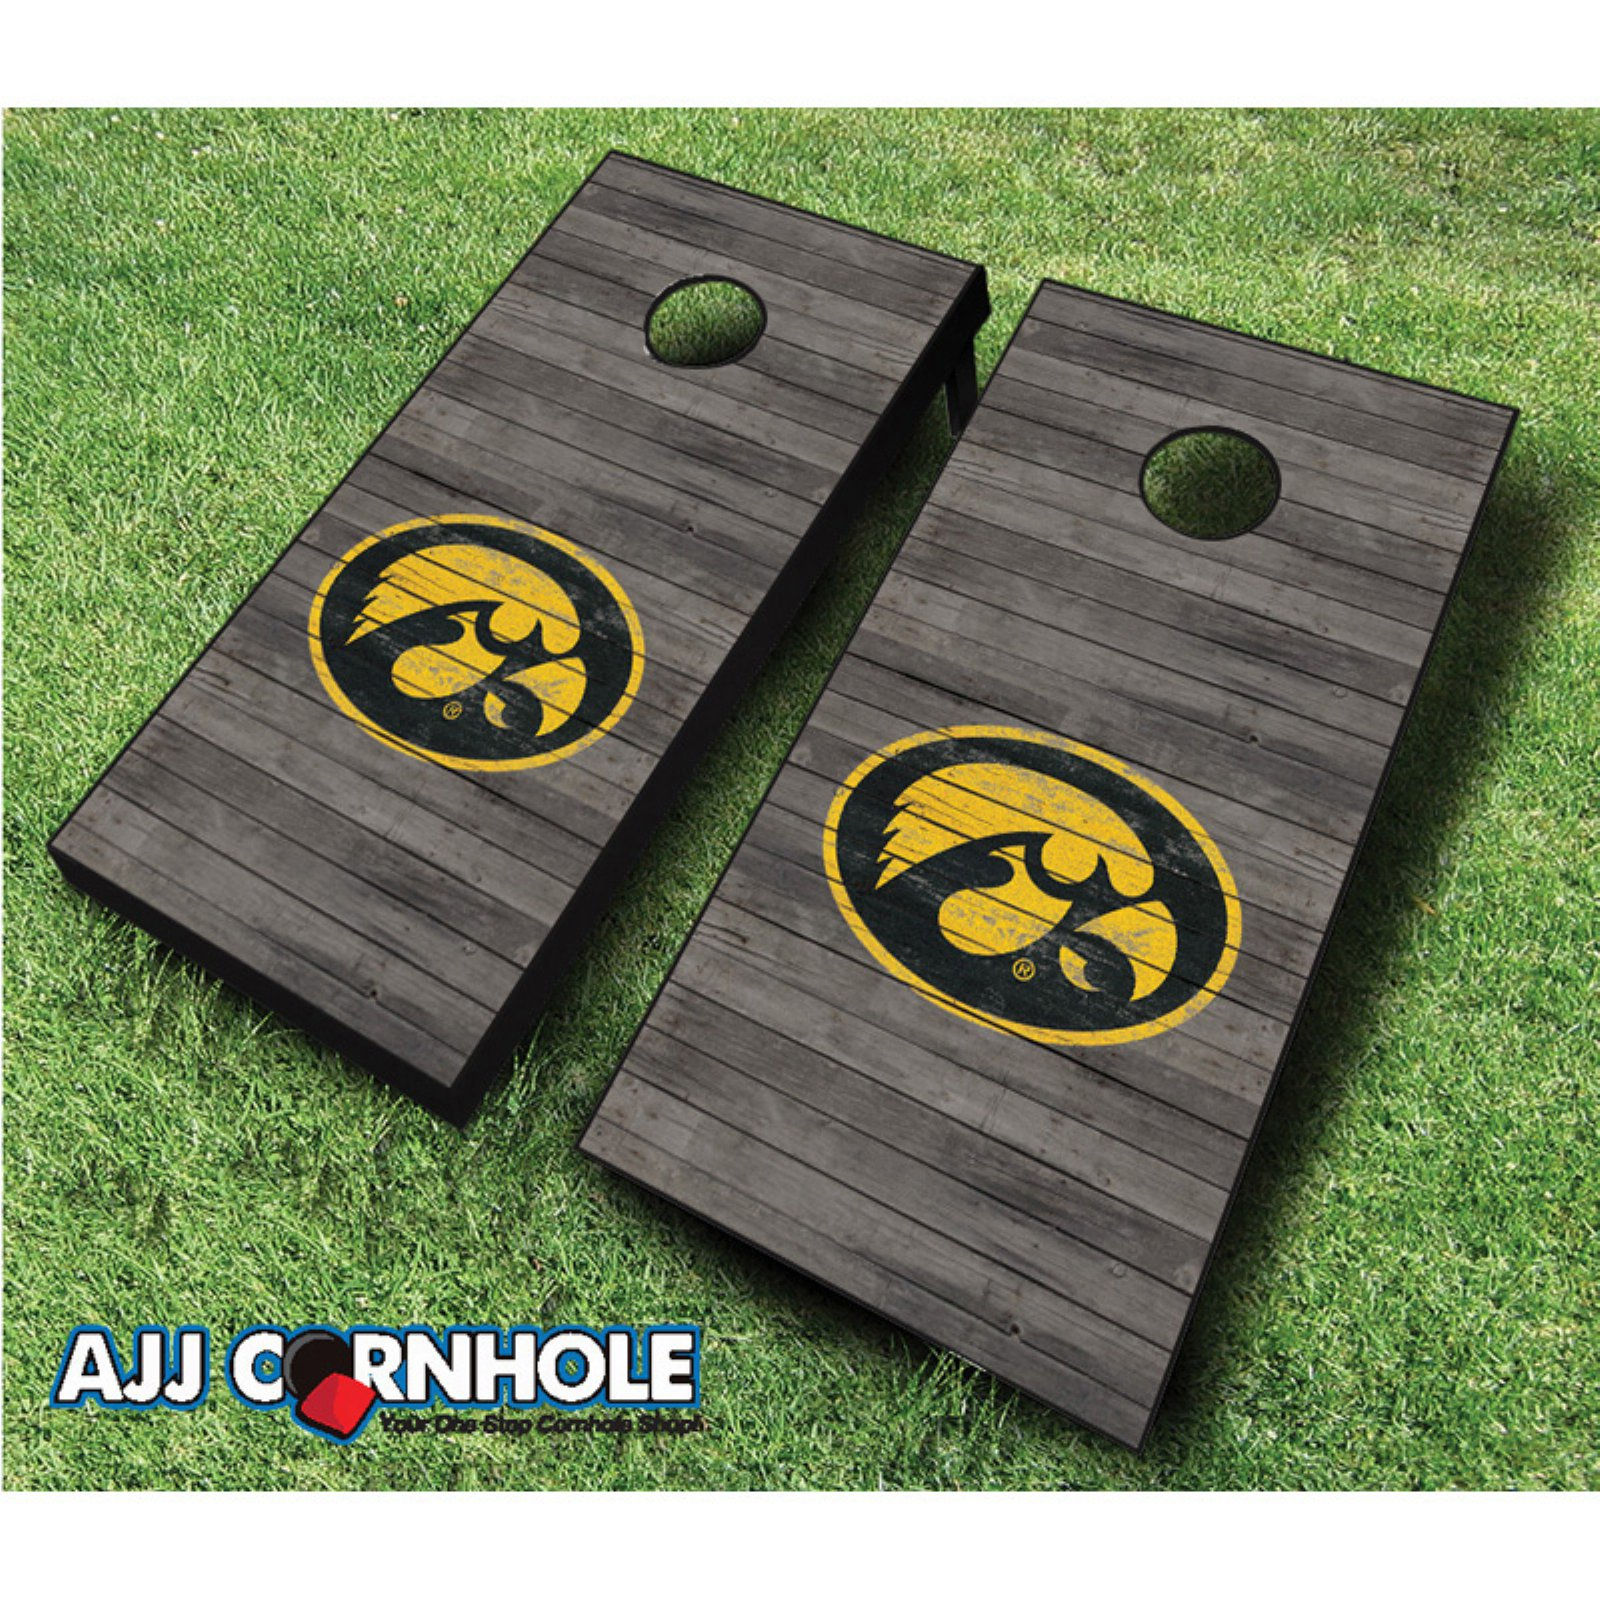 AJJ Cornhole Iowa Distressed Cornhole Set by